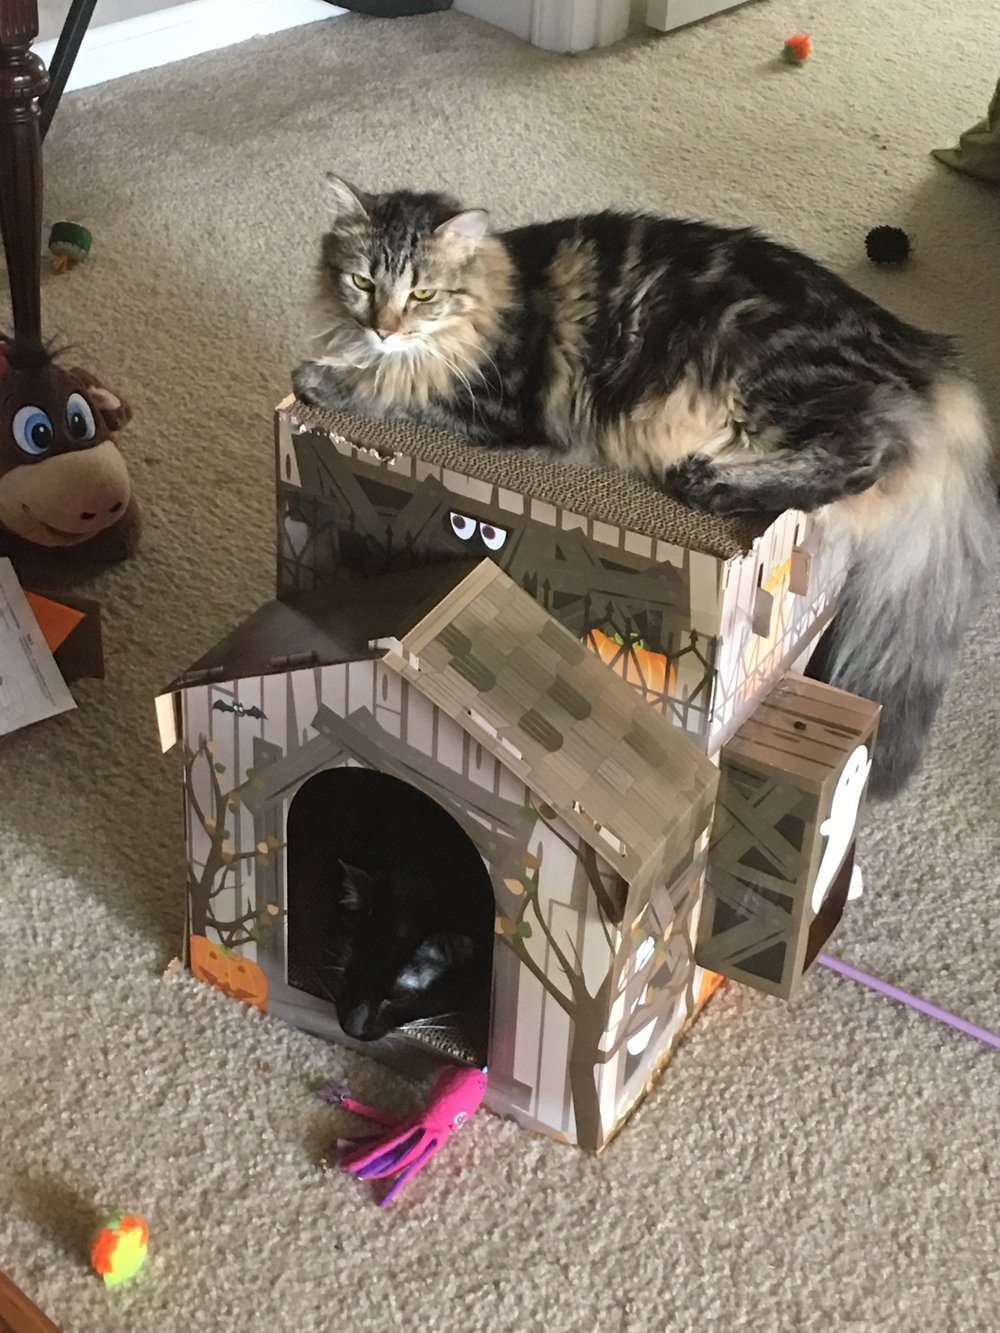 Gordie in the Halloween house, and Theo on top. (They are, in fact, named after hockey legends Gordie Howe and Theo Flurry.)